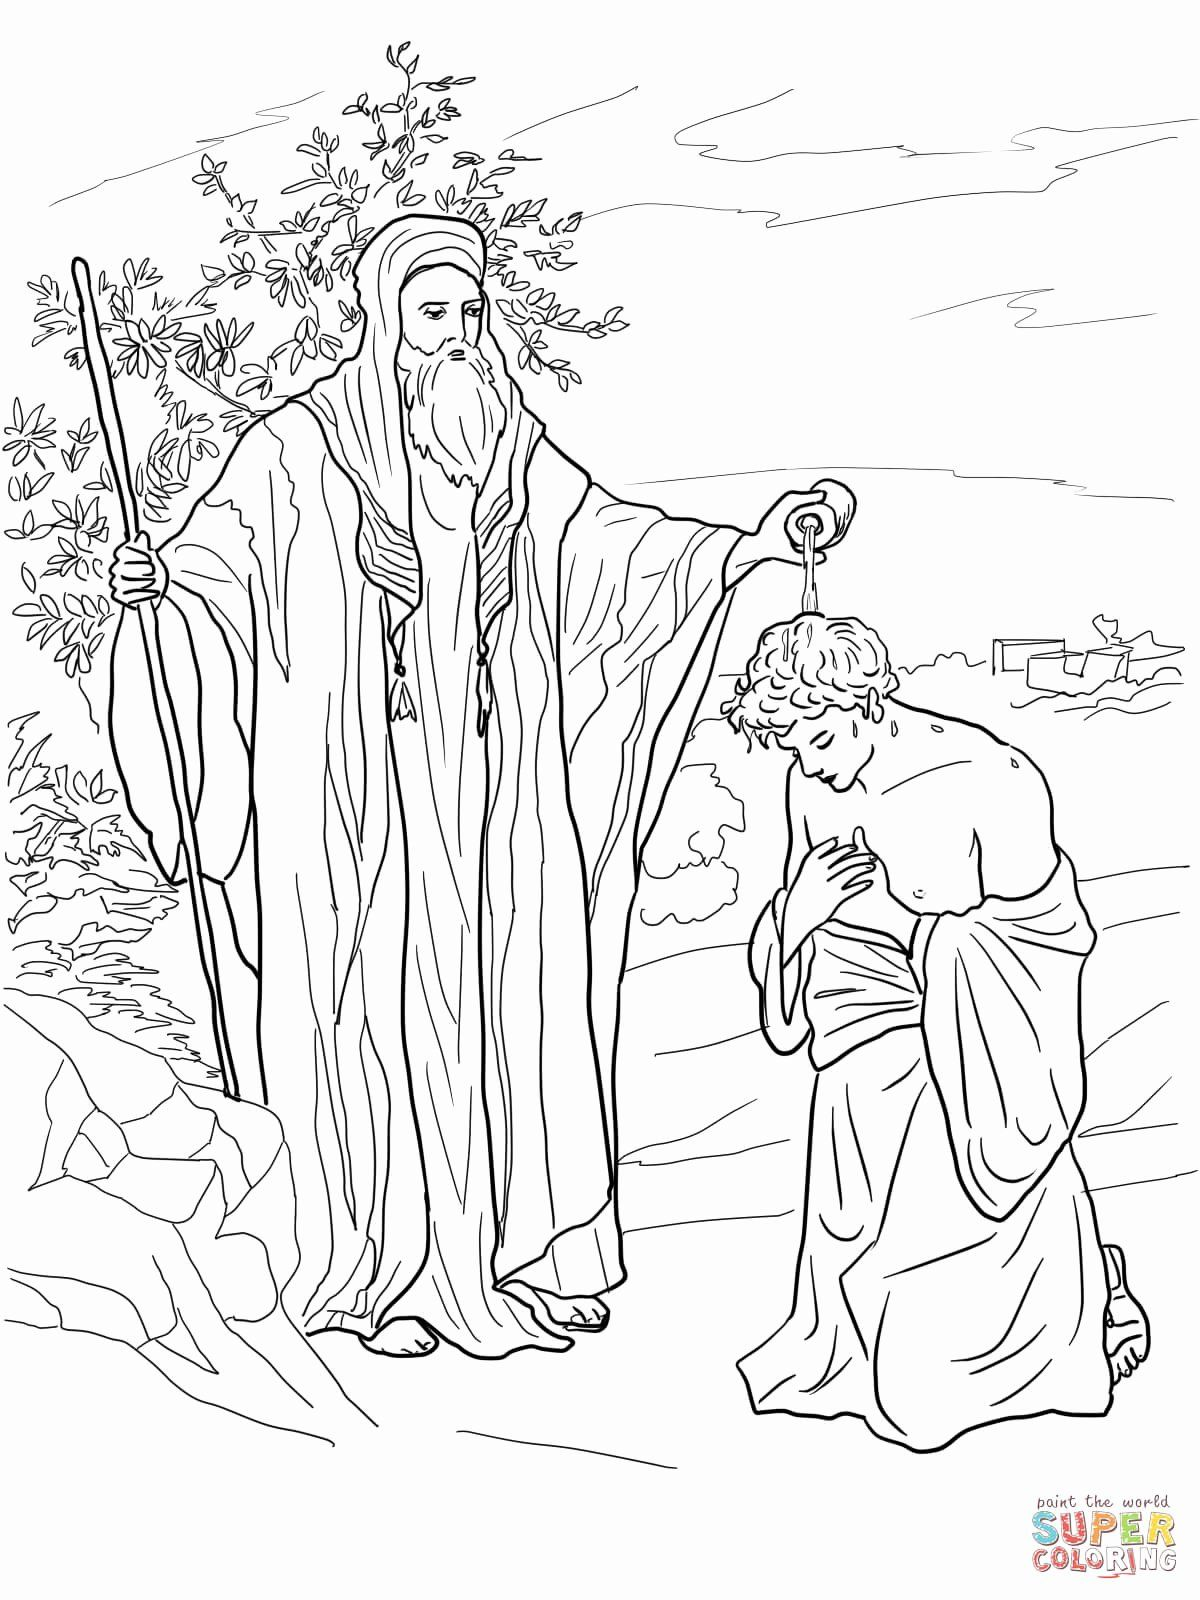 Samuel Anointed David As A King In The Story Of King Saul Coloring